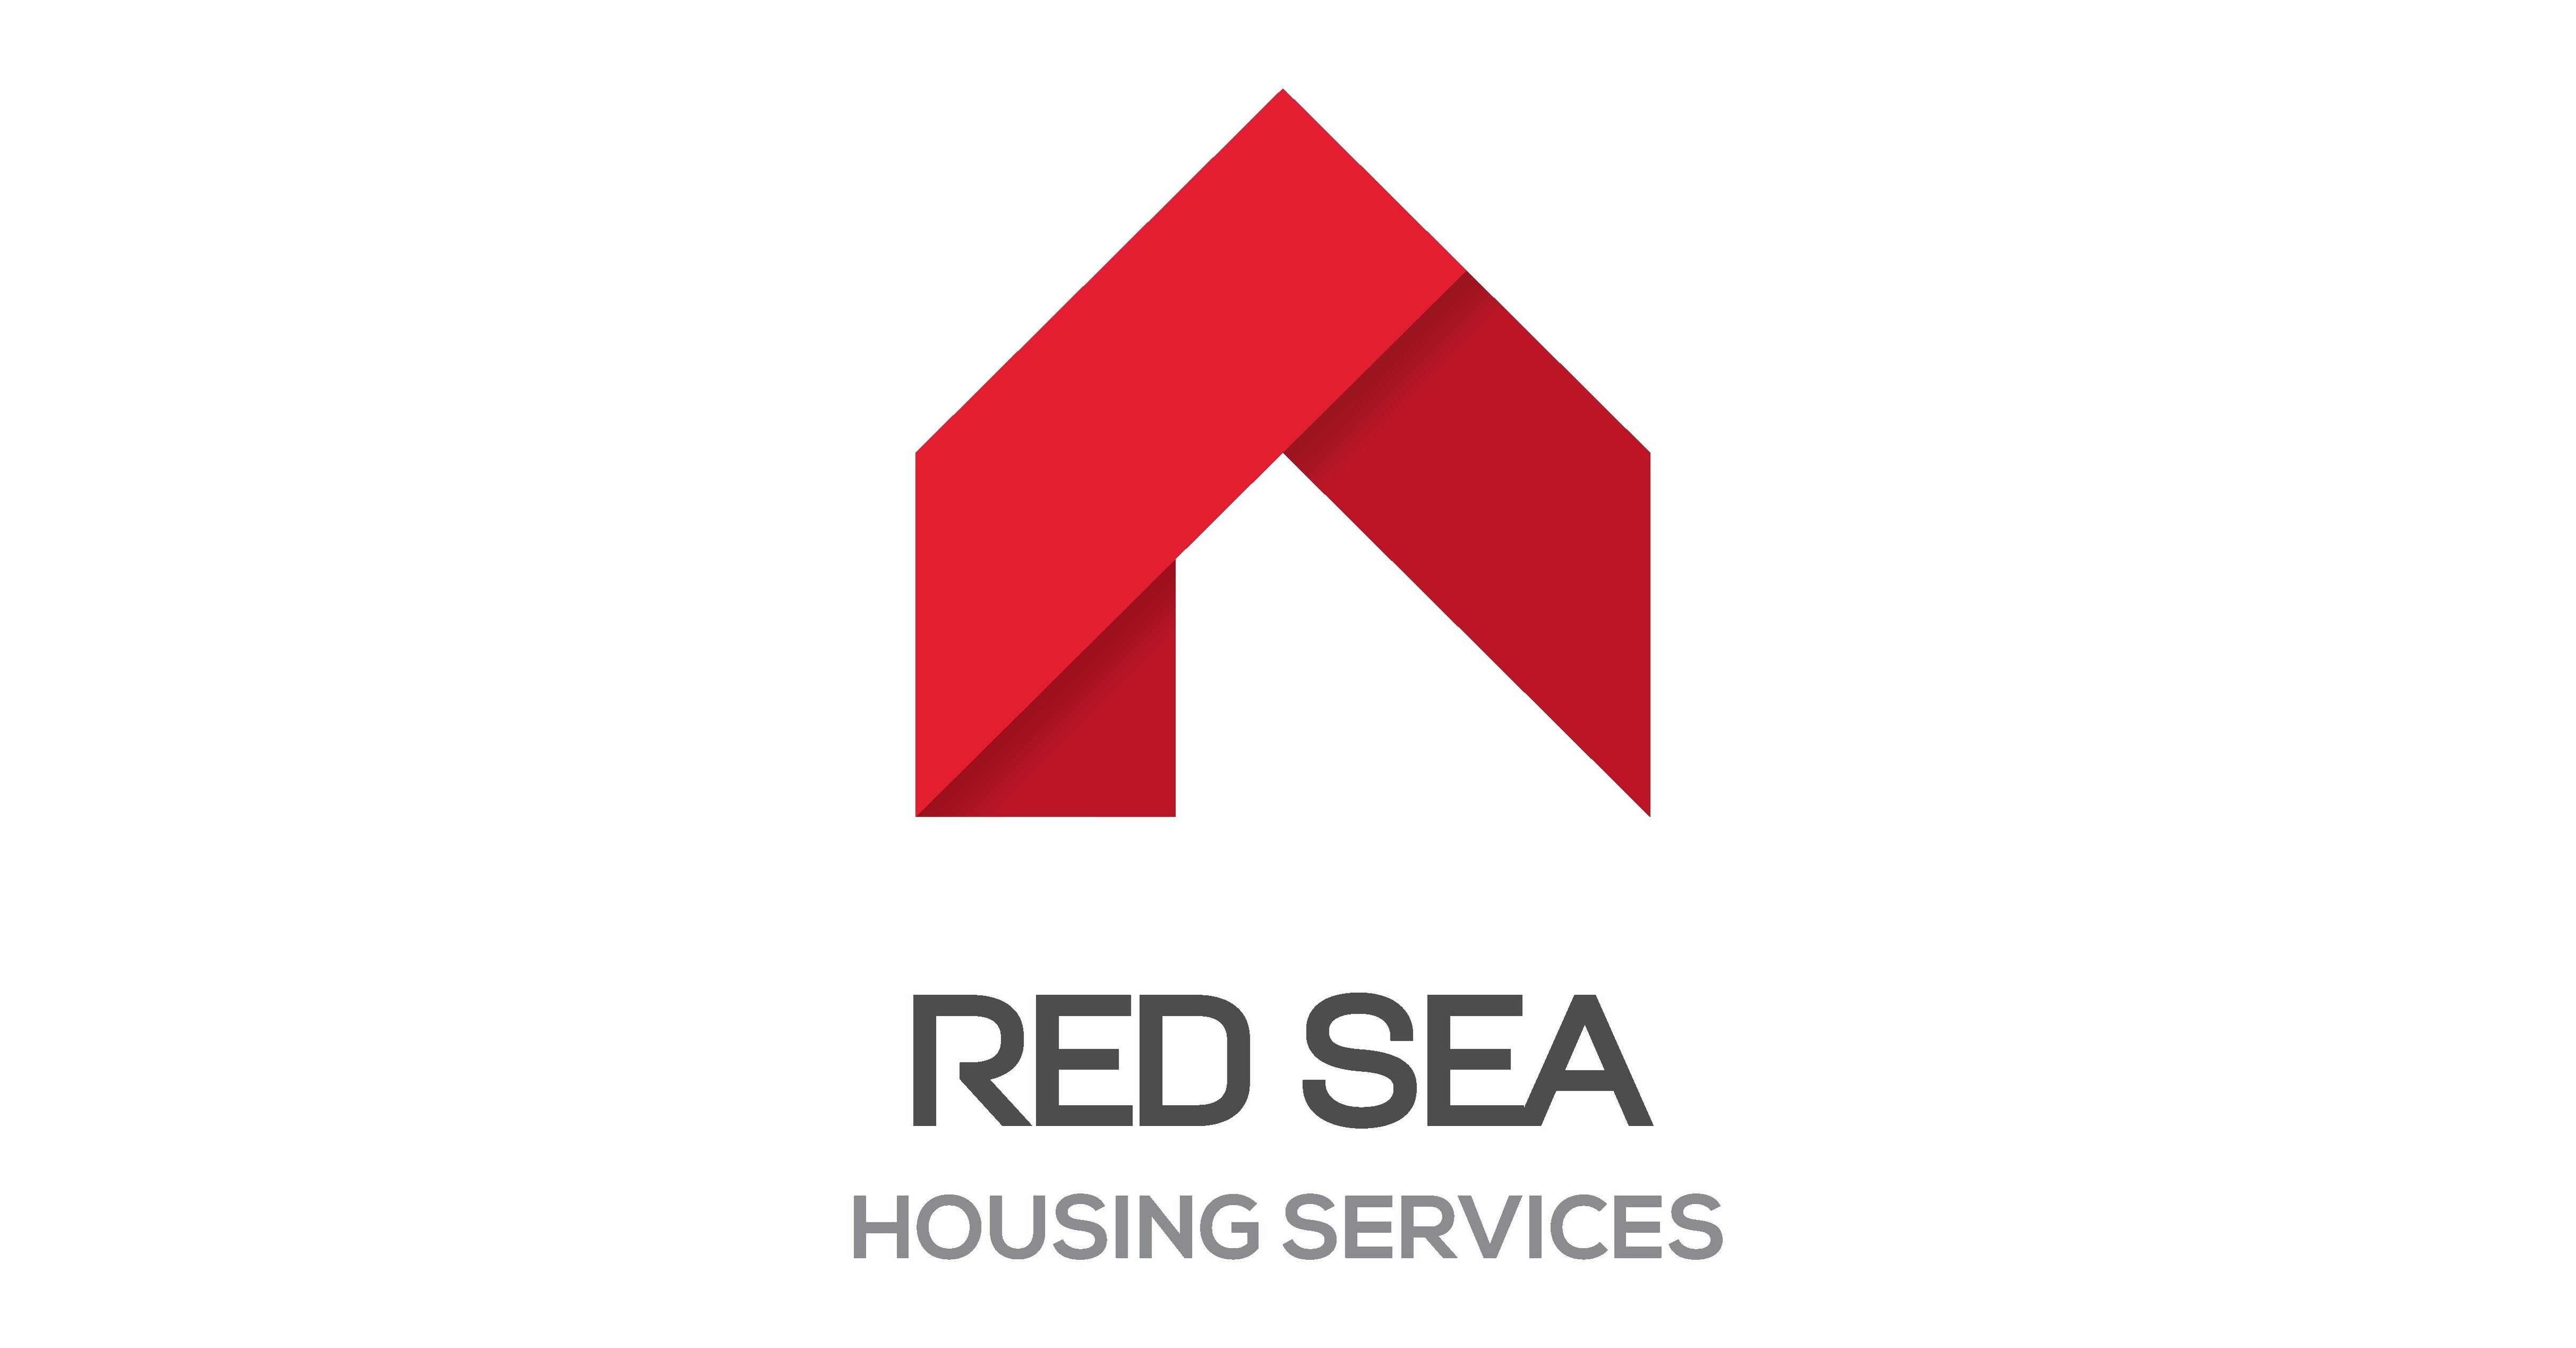 Affordable Auto Insurance >> Red Sea Housing Services and AECOM Sign MoU to Bring Fast-track Modular Affordable Housing